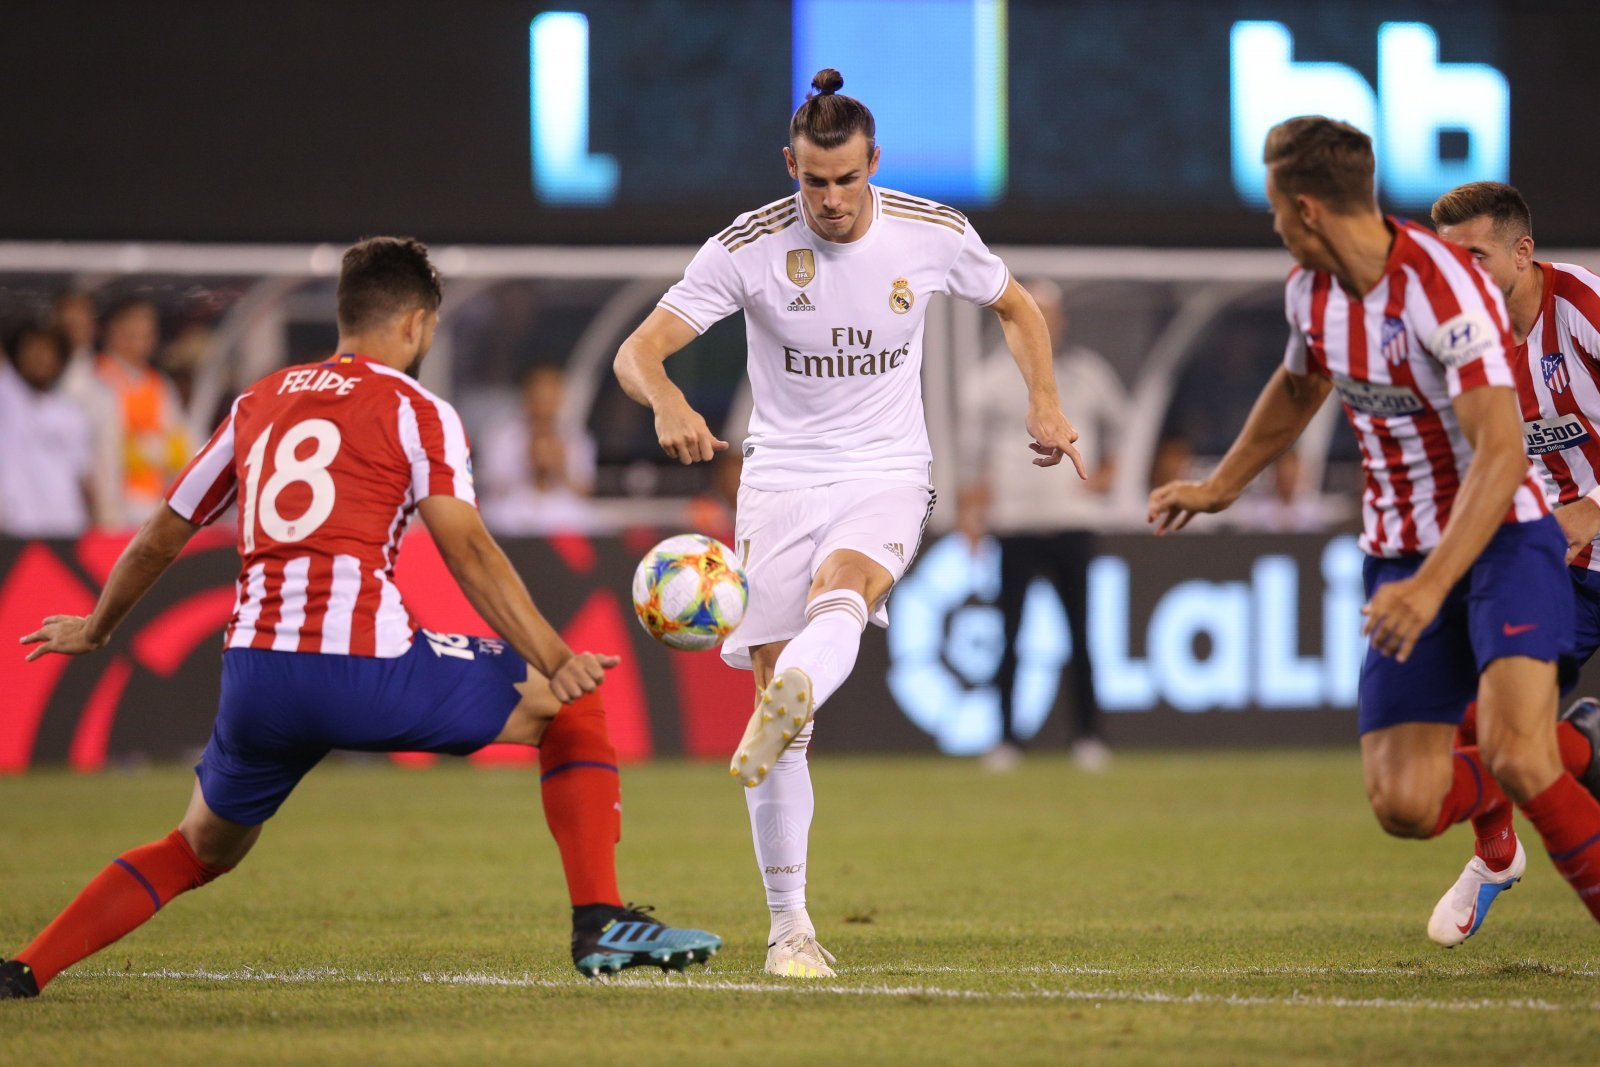 Real Madrid: Move to China could be back on the cards for Gareth Bale